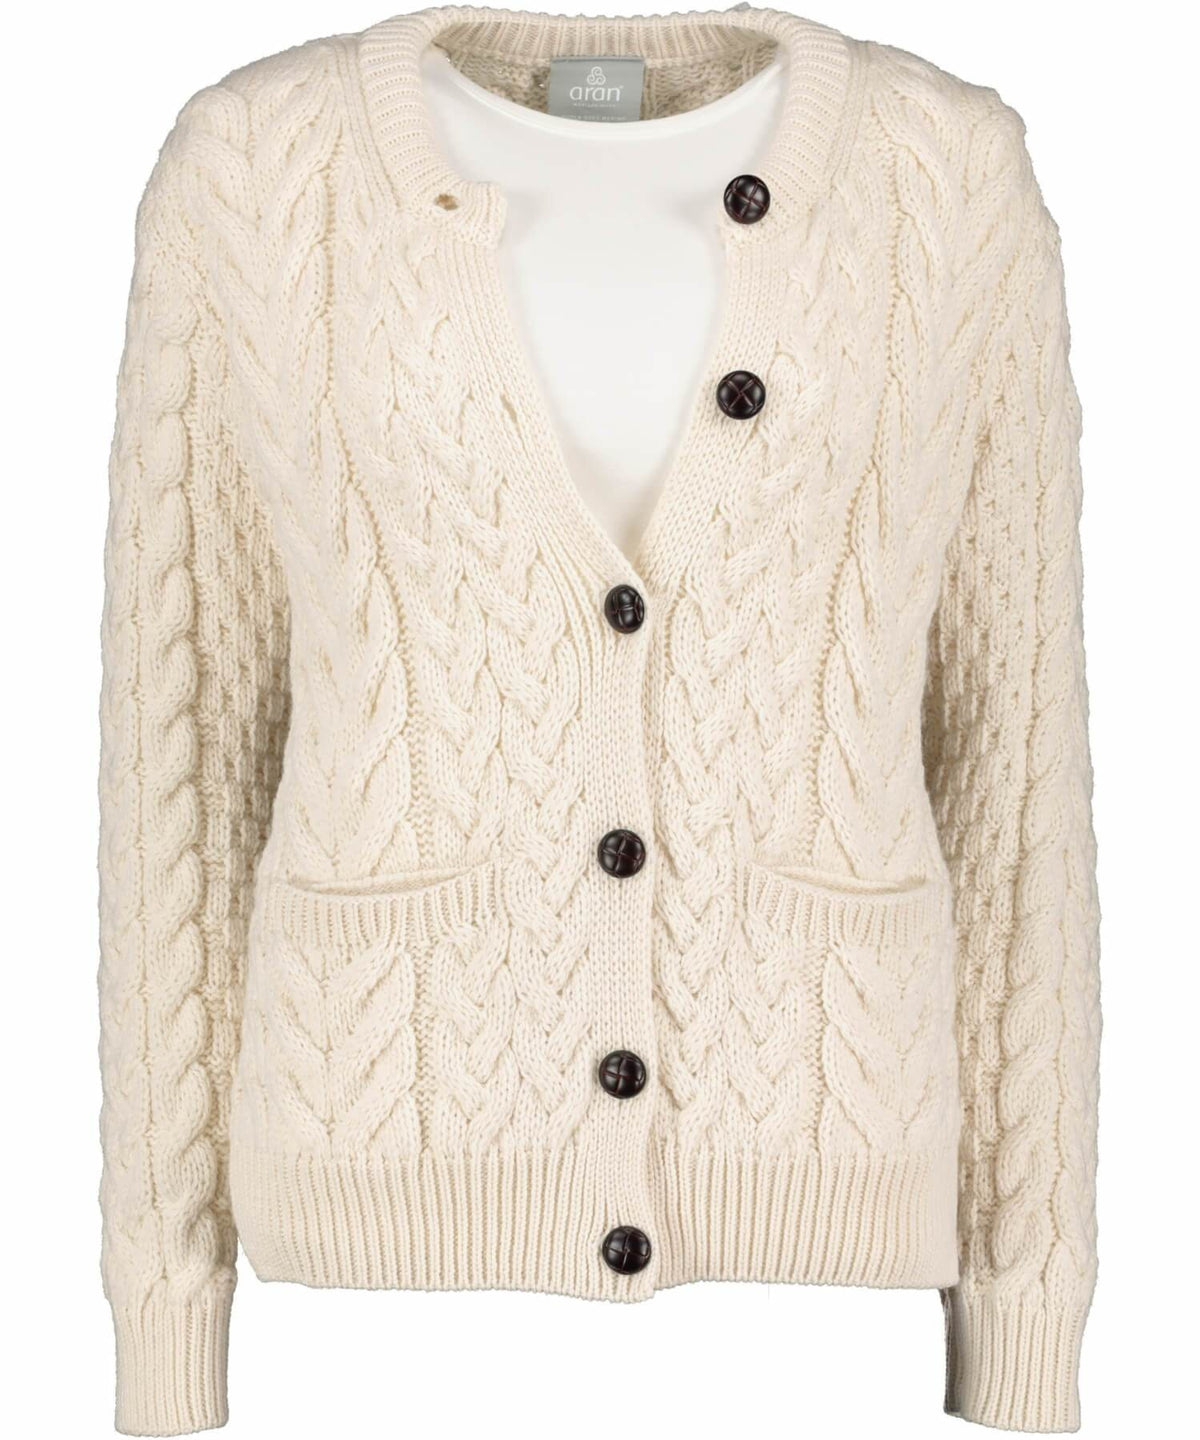 Supersoft Button Cardigan - Classic Aran - [Aran Woollen Mills] - Ladies Sweaters & Cardigans - Irish Gifts